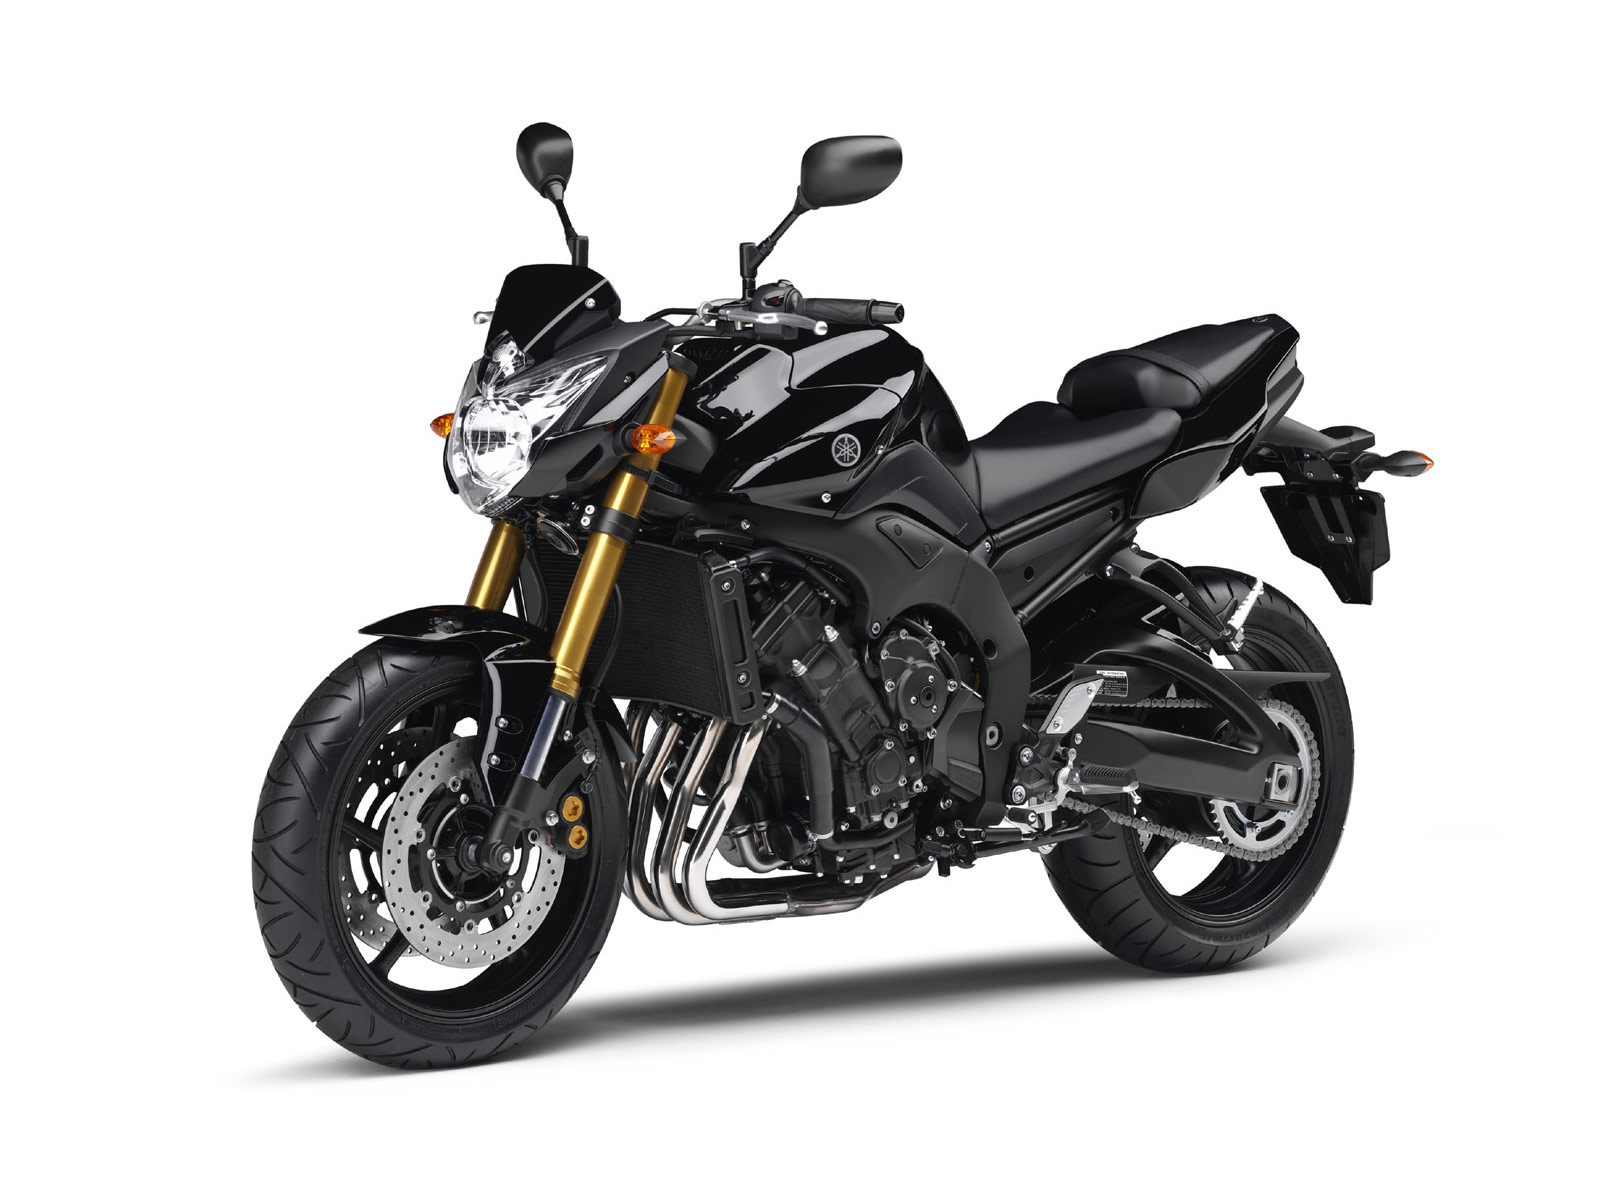 2011 yamaha fz8 motorcycle pictures review and specifications for Motor sport yamaha